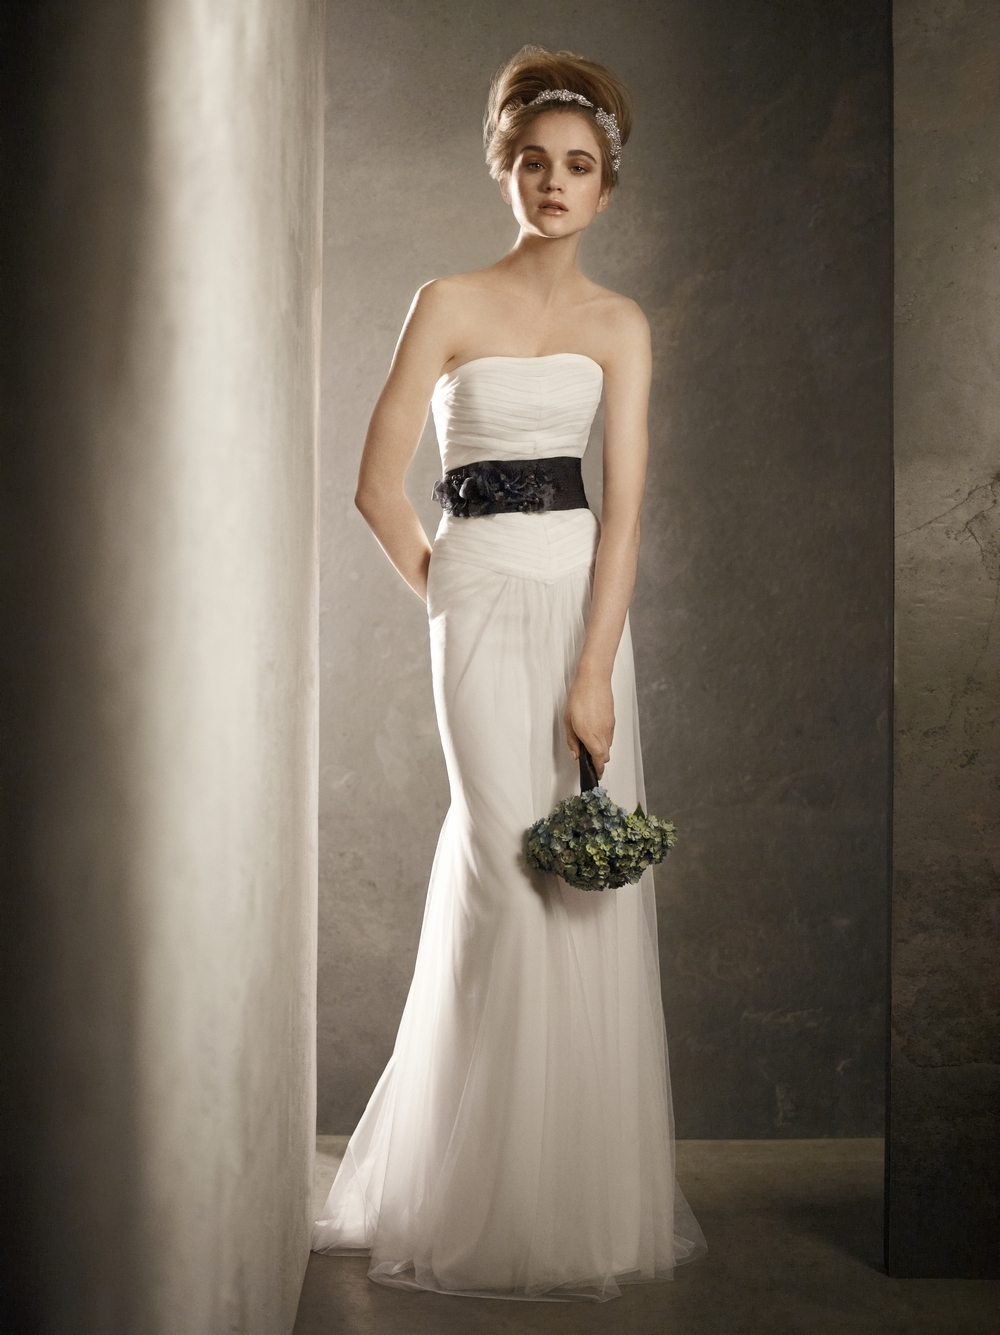 Strapless white modified mermaid 2011 wedding dress with black ...